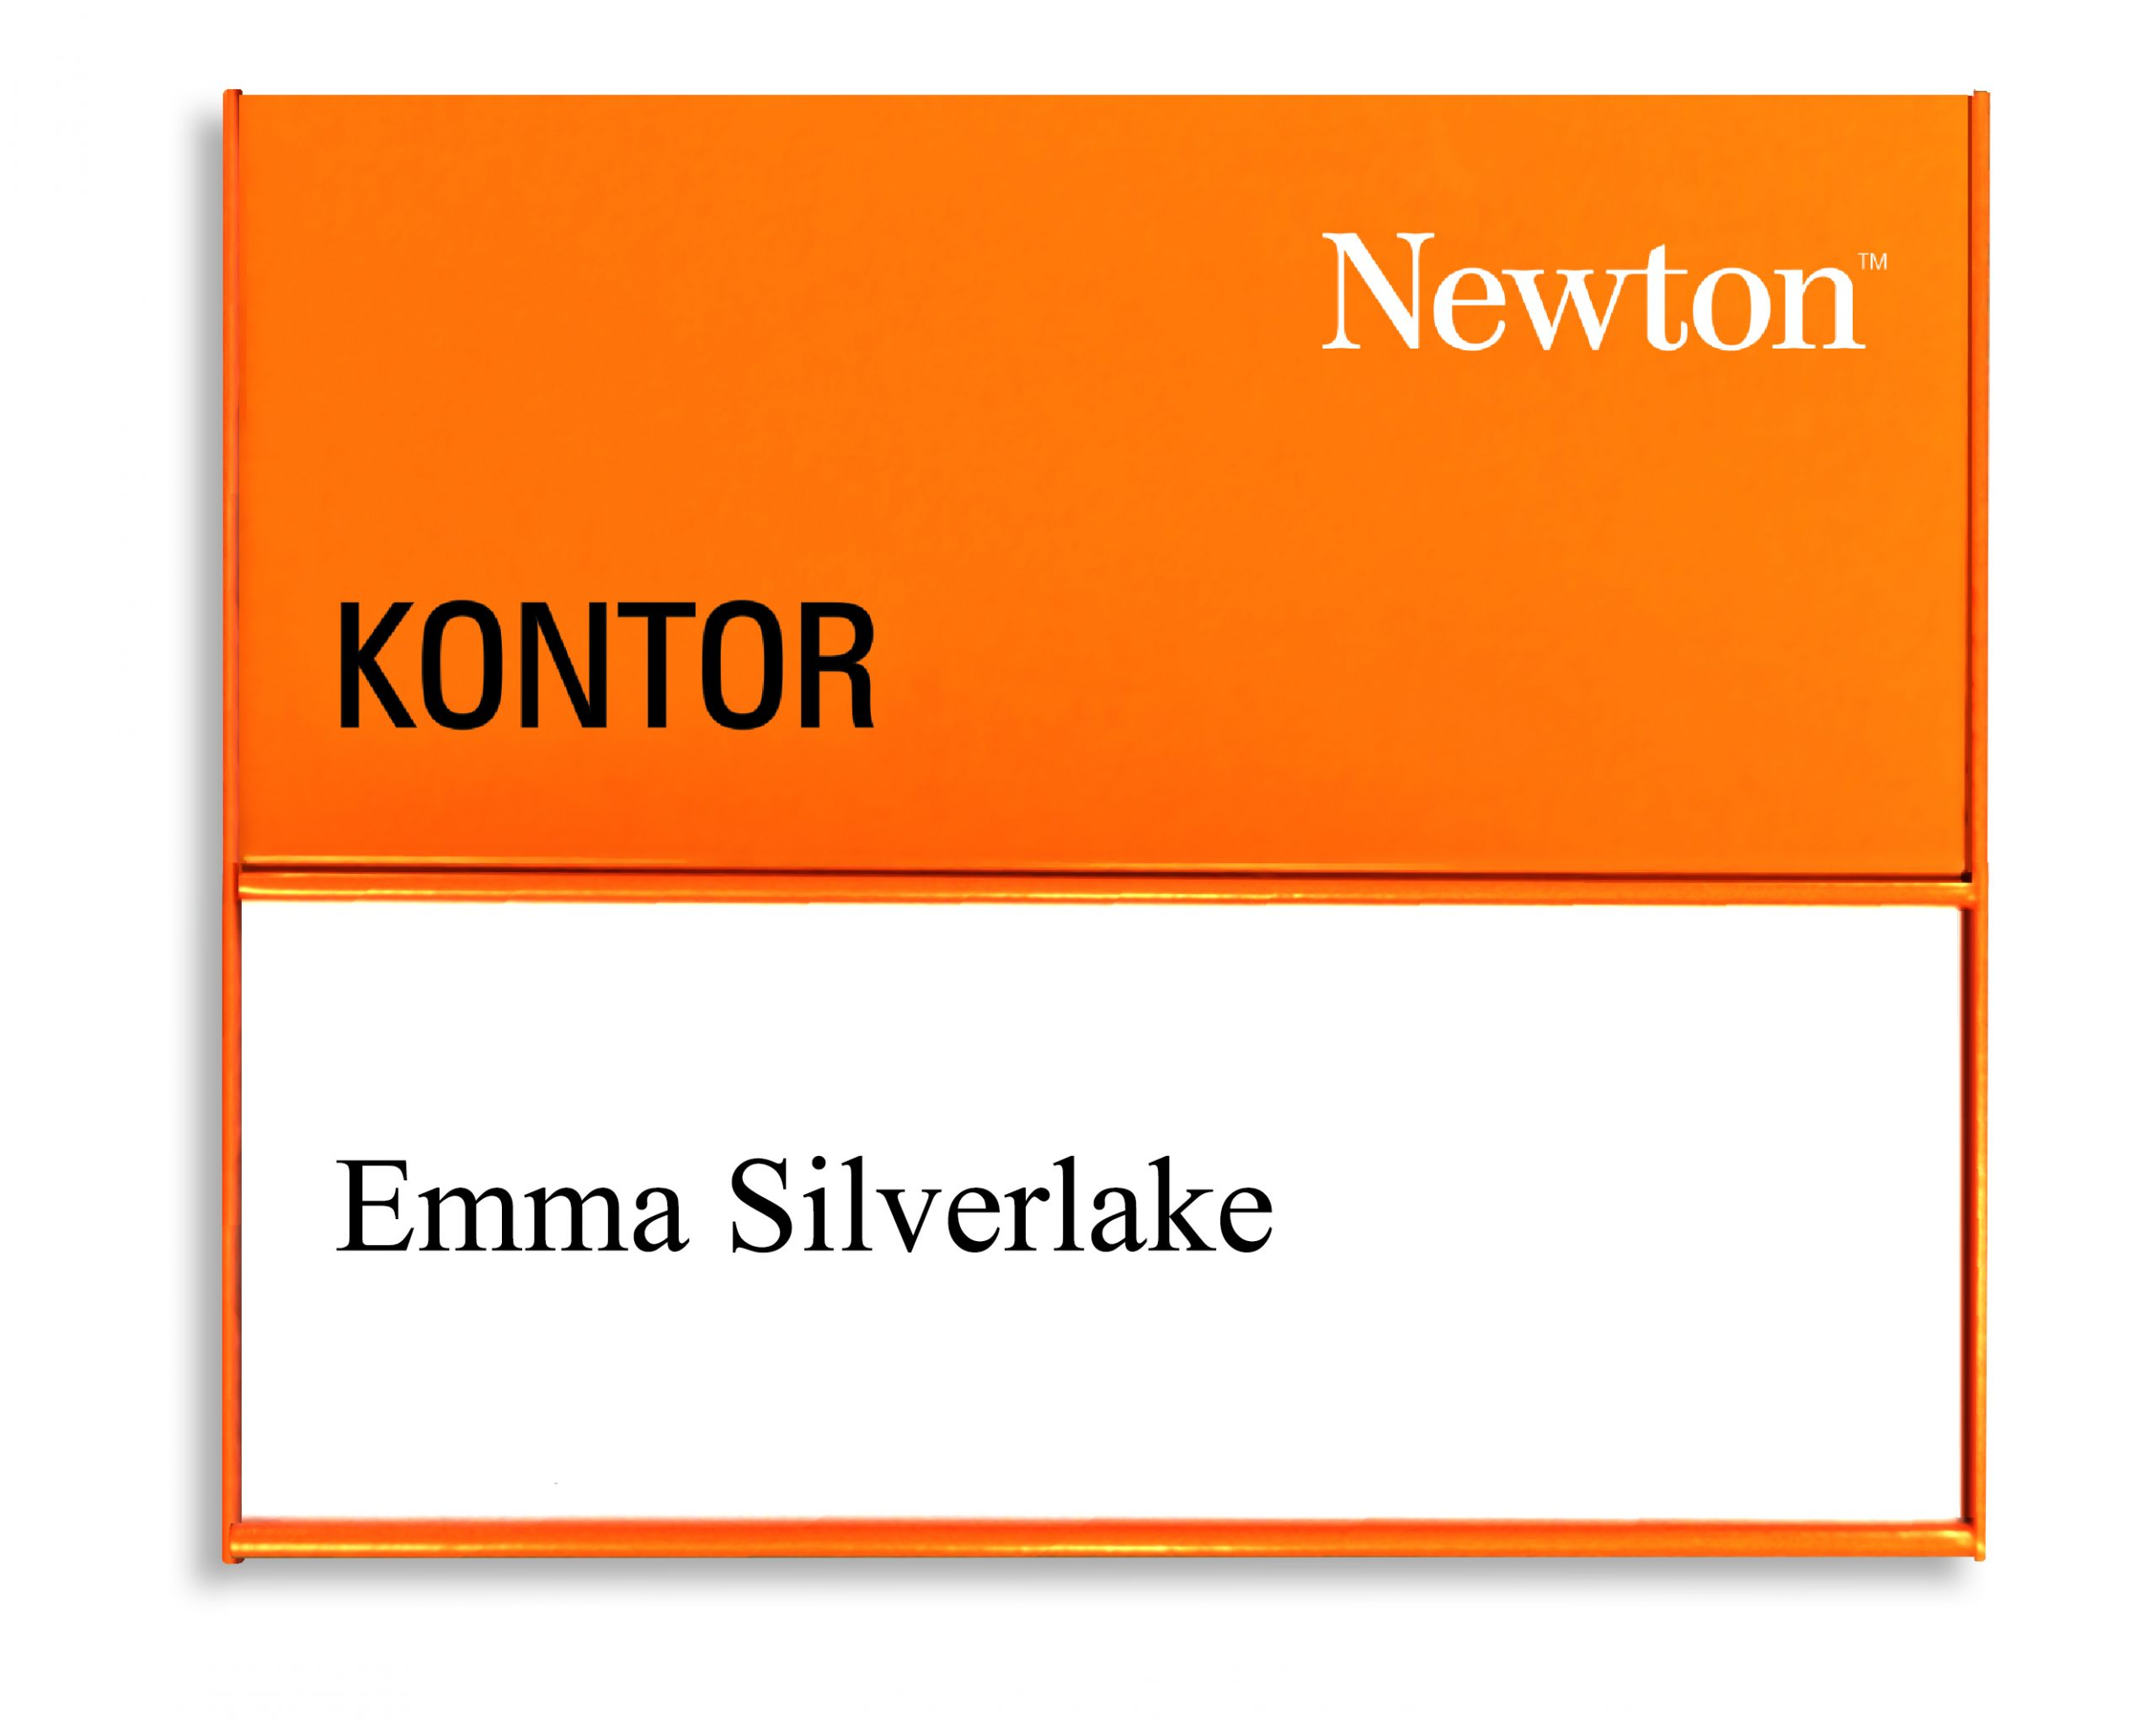 Room Sign / Name Plate (SLD160R2-001)